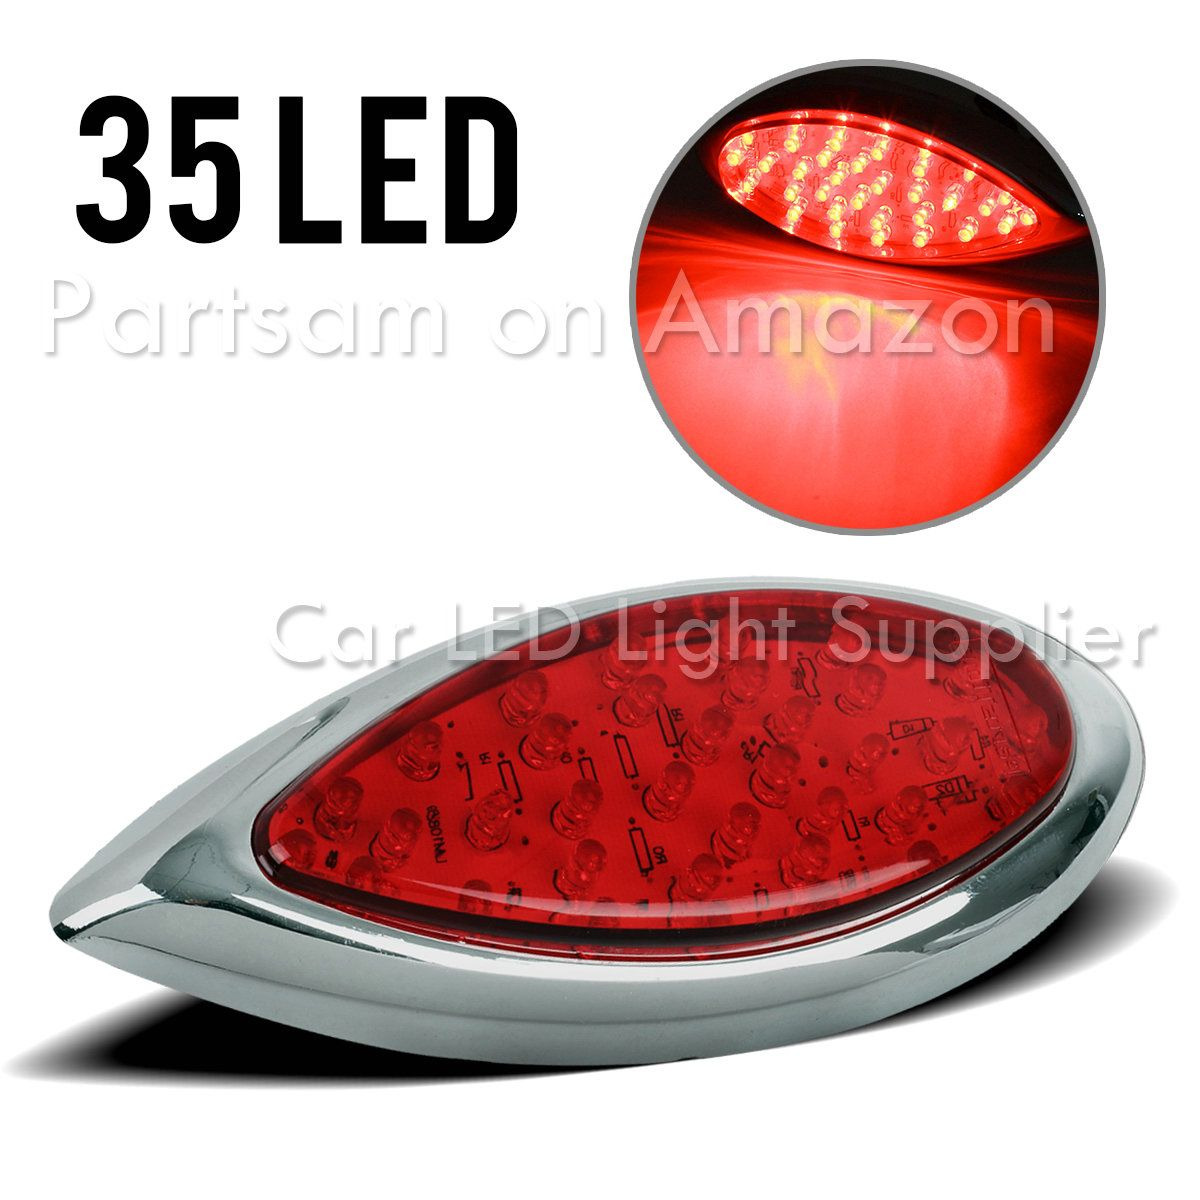 Partsam Side Marker Light 16led Peterbilt Style Replacement Surface Mouht 6 1 2inch Amber Fitment Universa Peterbilt Freightliner Freightliner Trucks